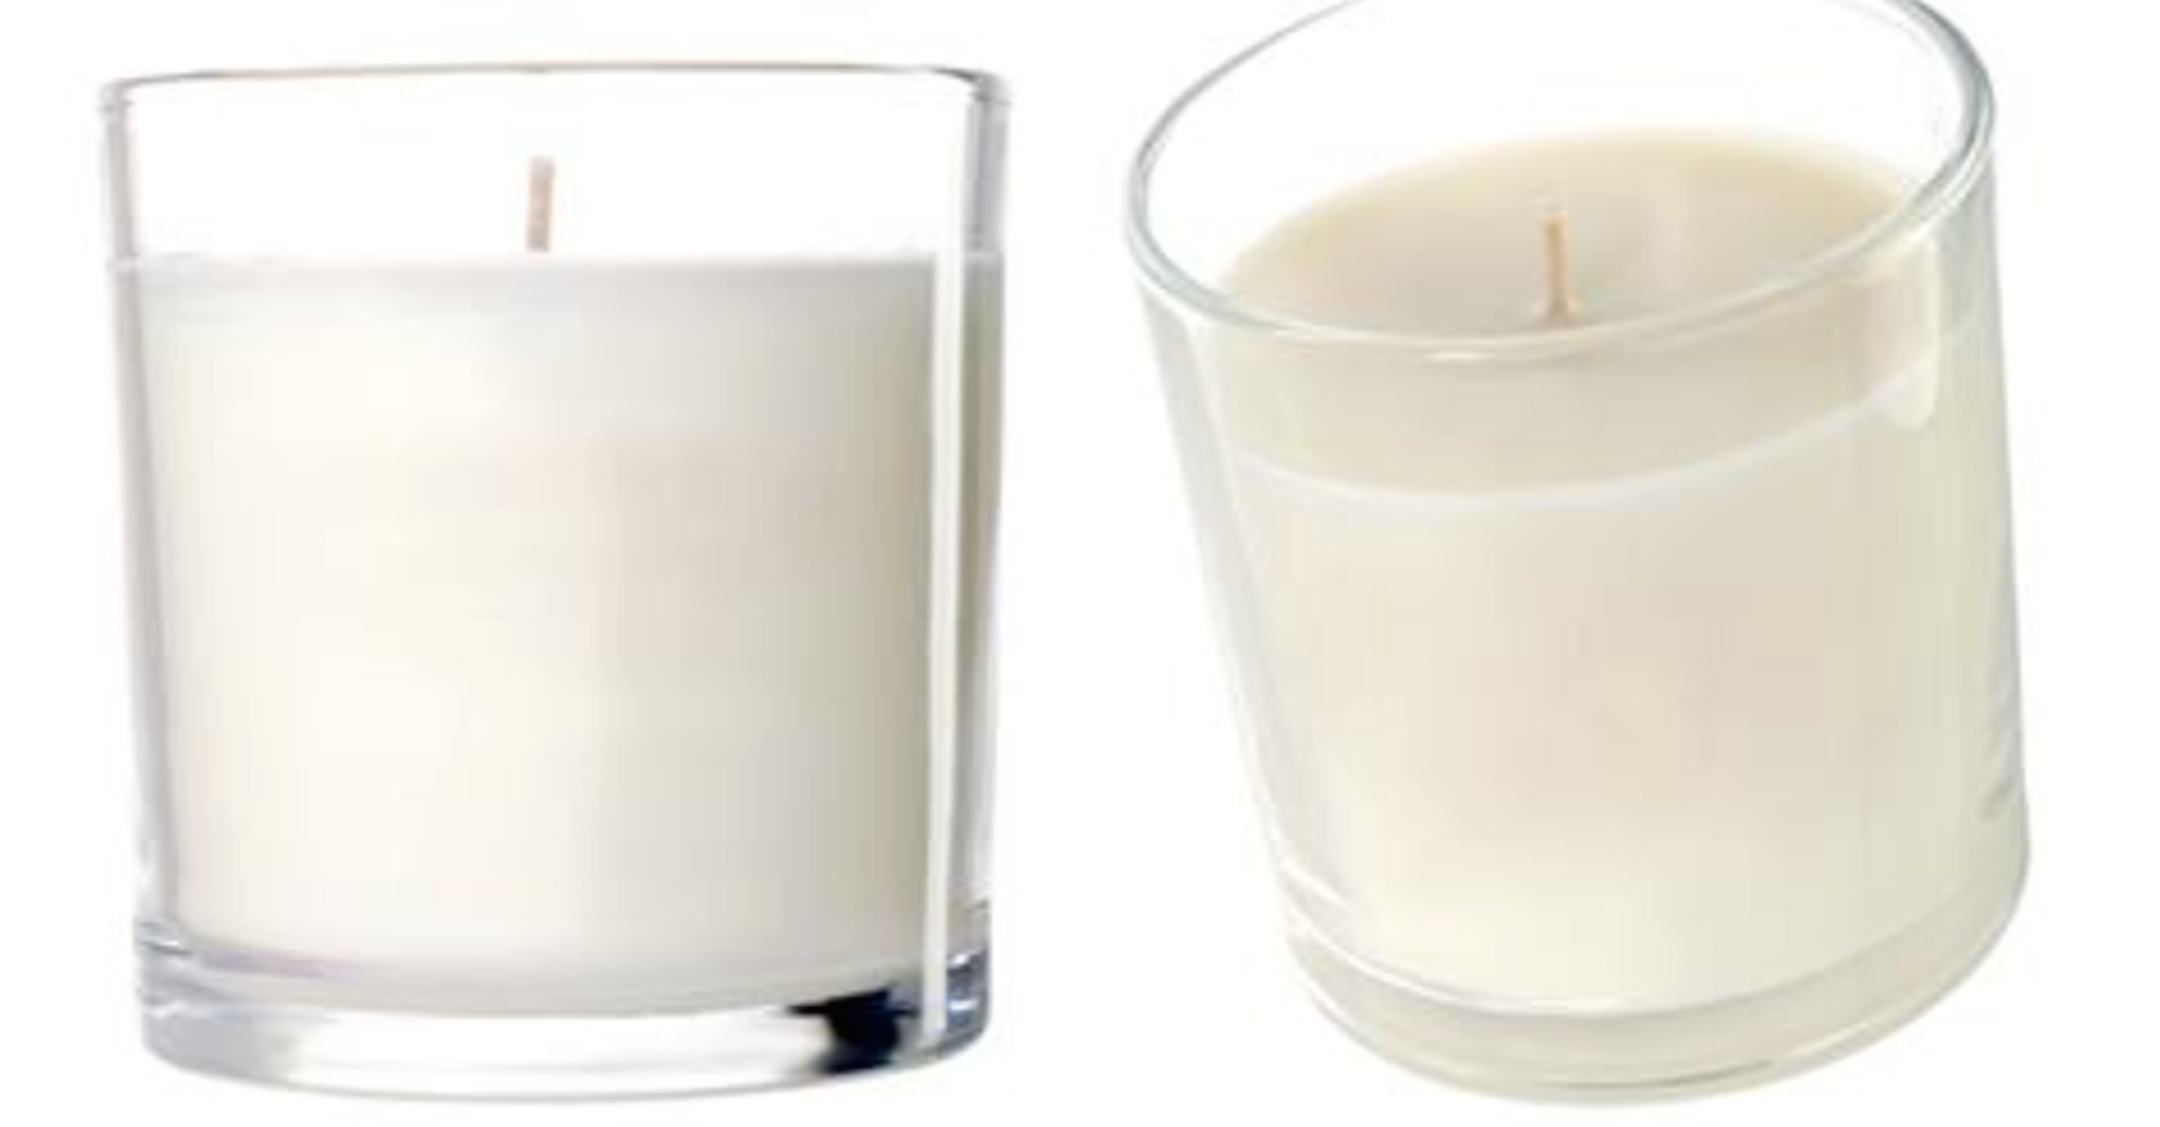 Creating Your Own Line of Natural Wax Candles - April 26